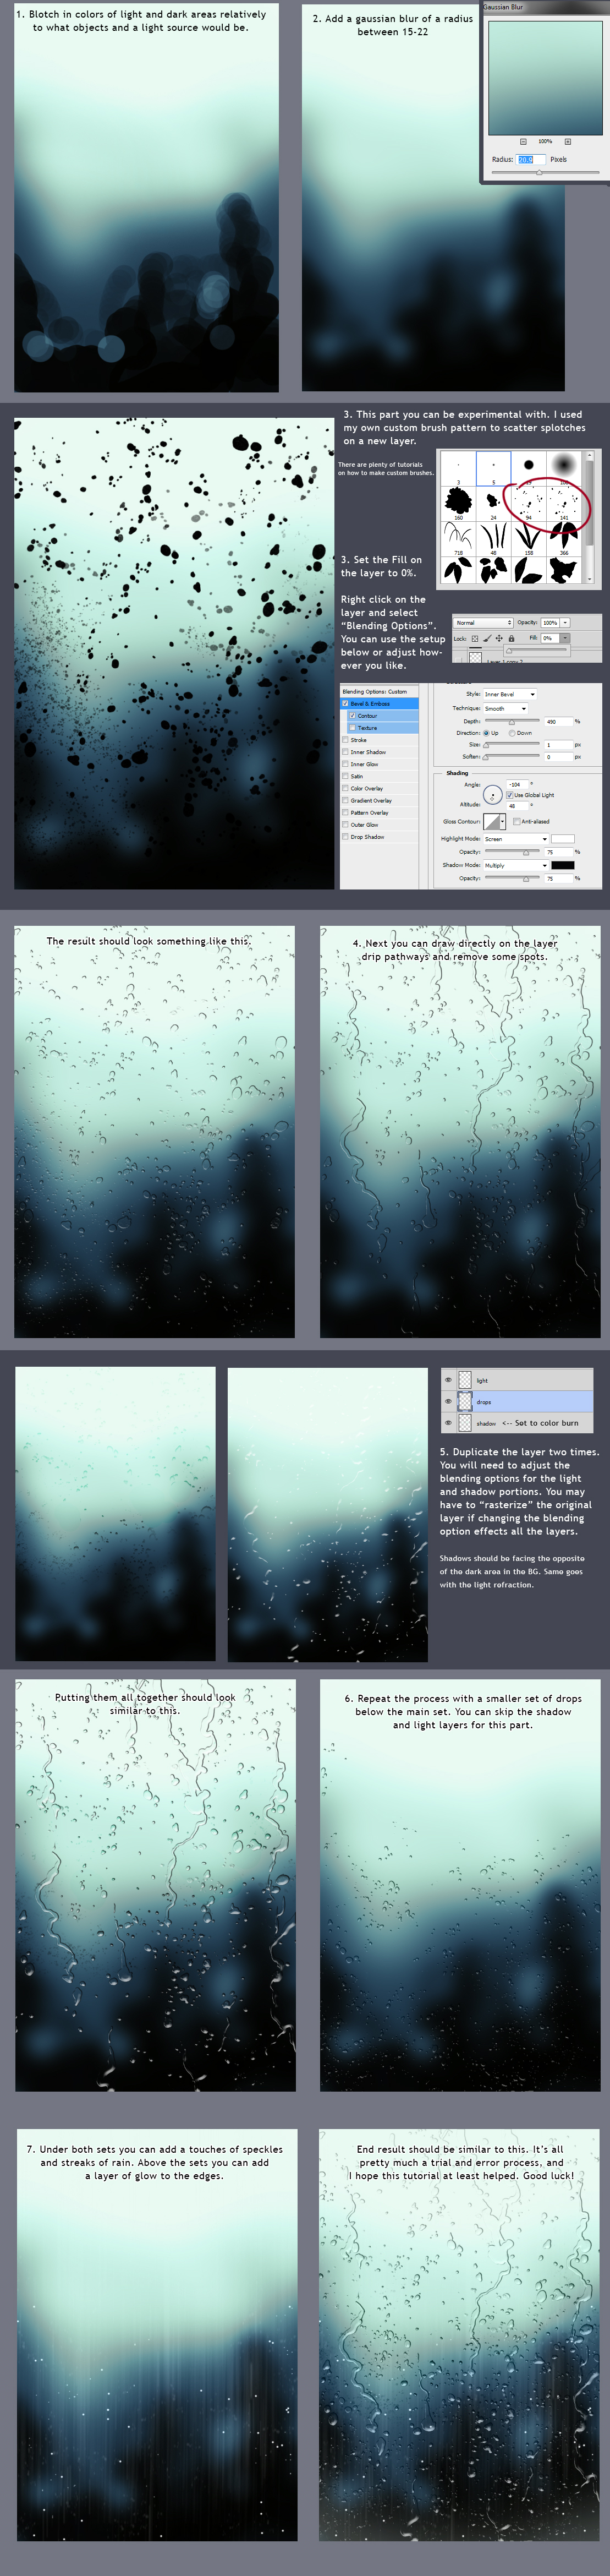 Rain Drops On A Window Tutorial By Kianite On Deviantart